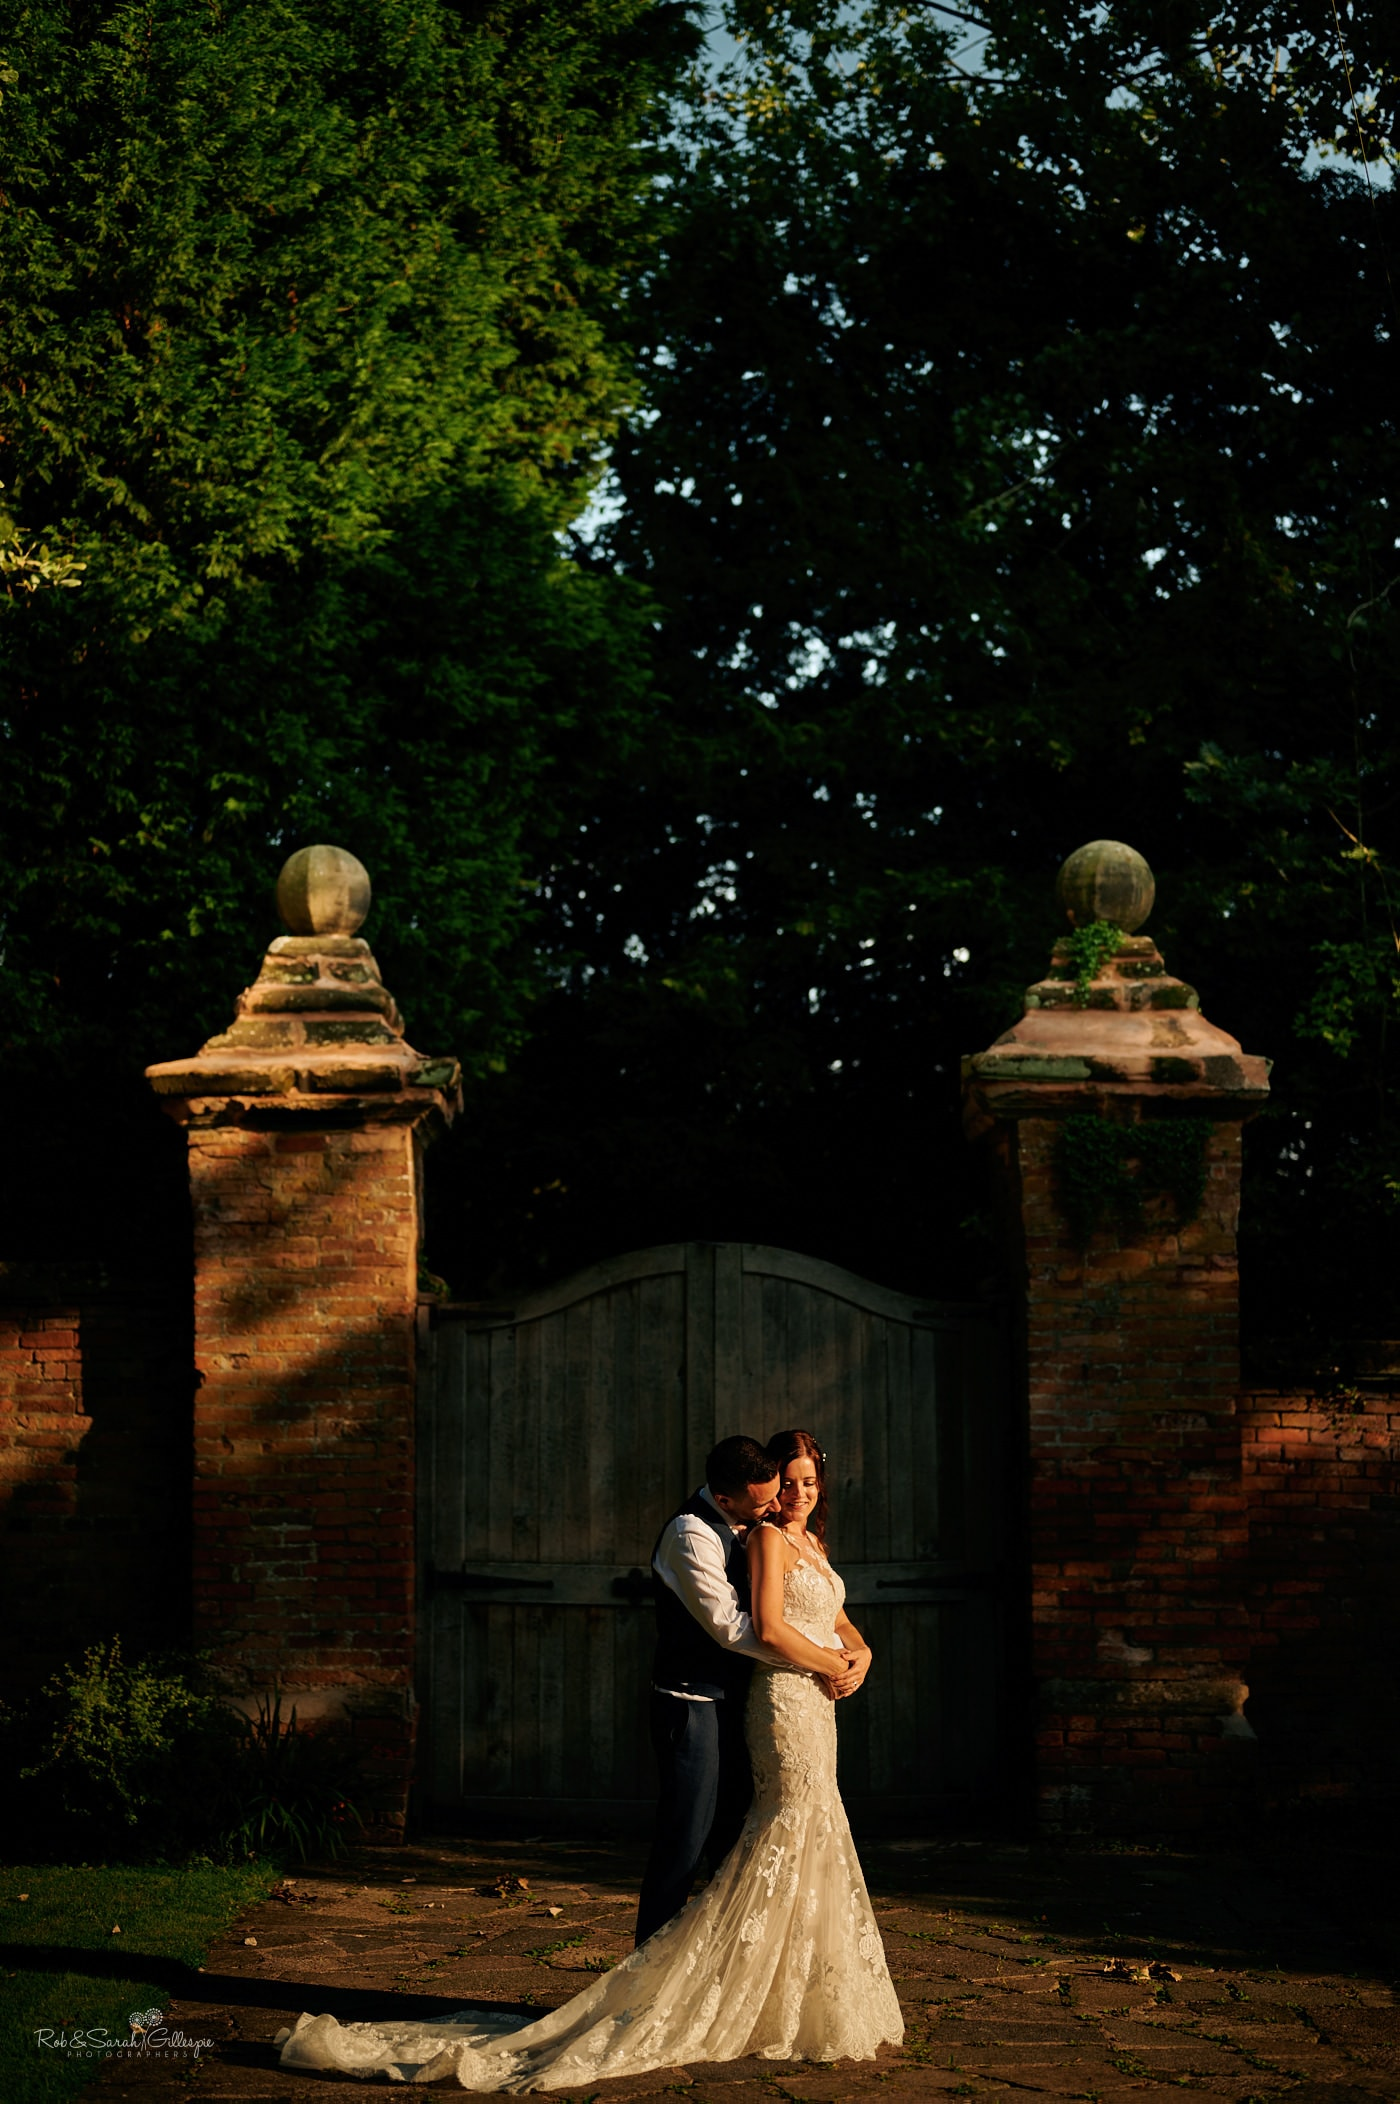 Bride and groom in grounds at Gorcott Hall in bright afternoon sunlight